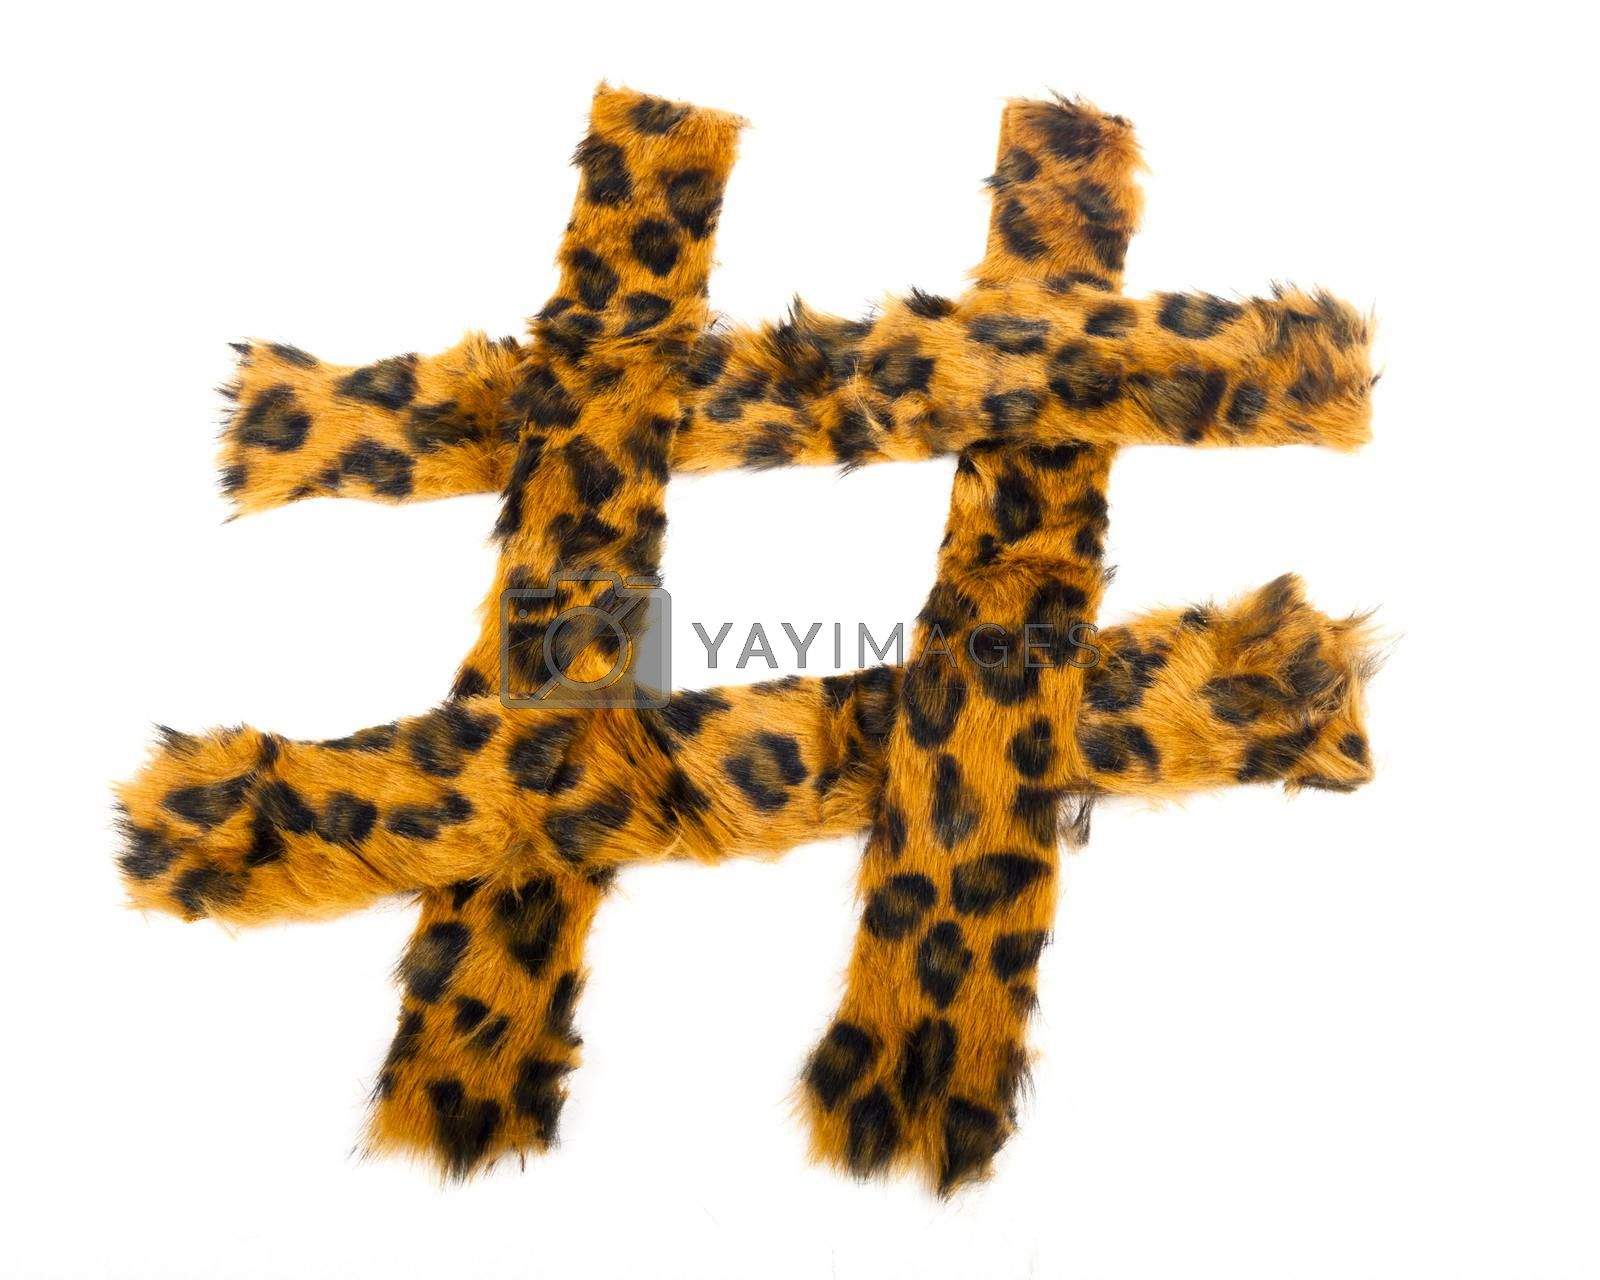 Royalty free image of Leopard Hashtag by mothy20